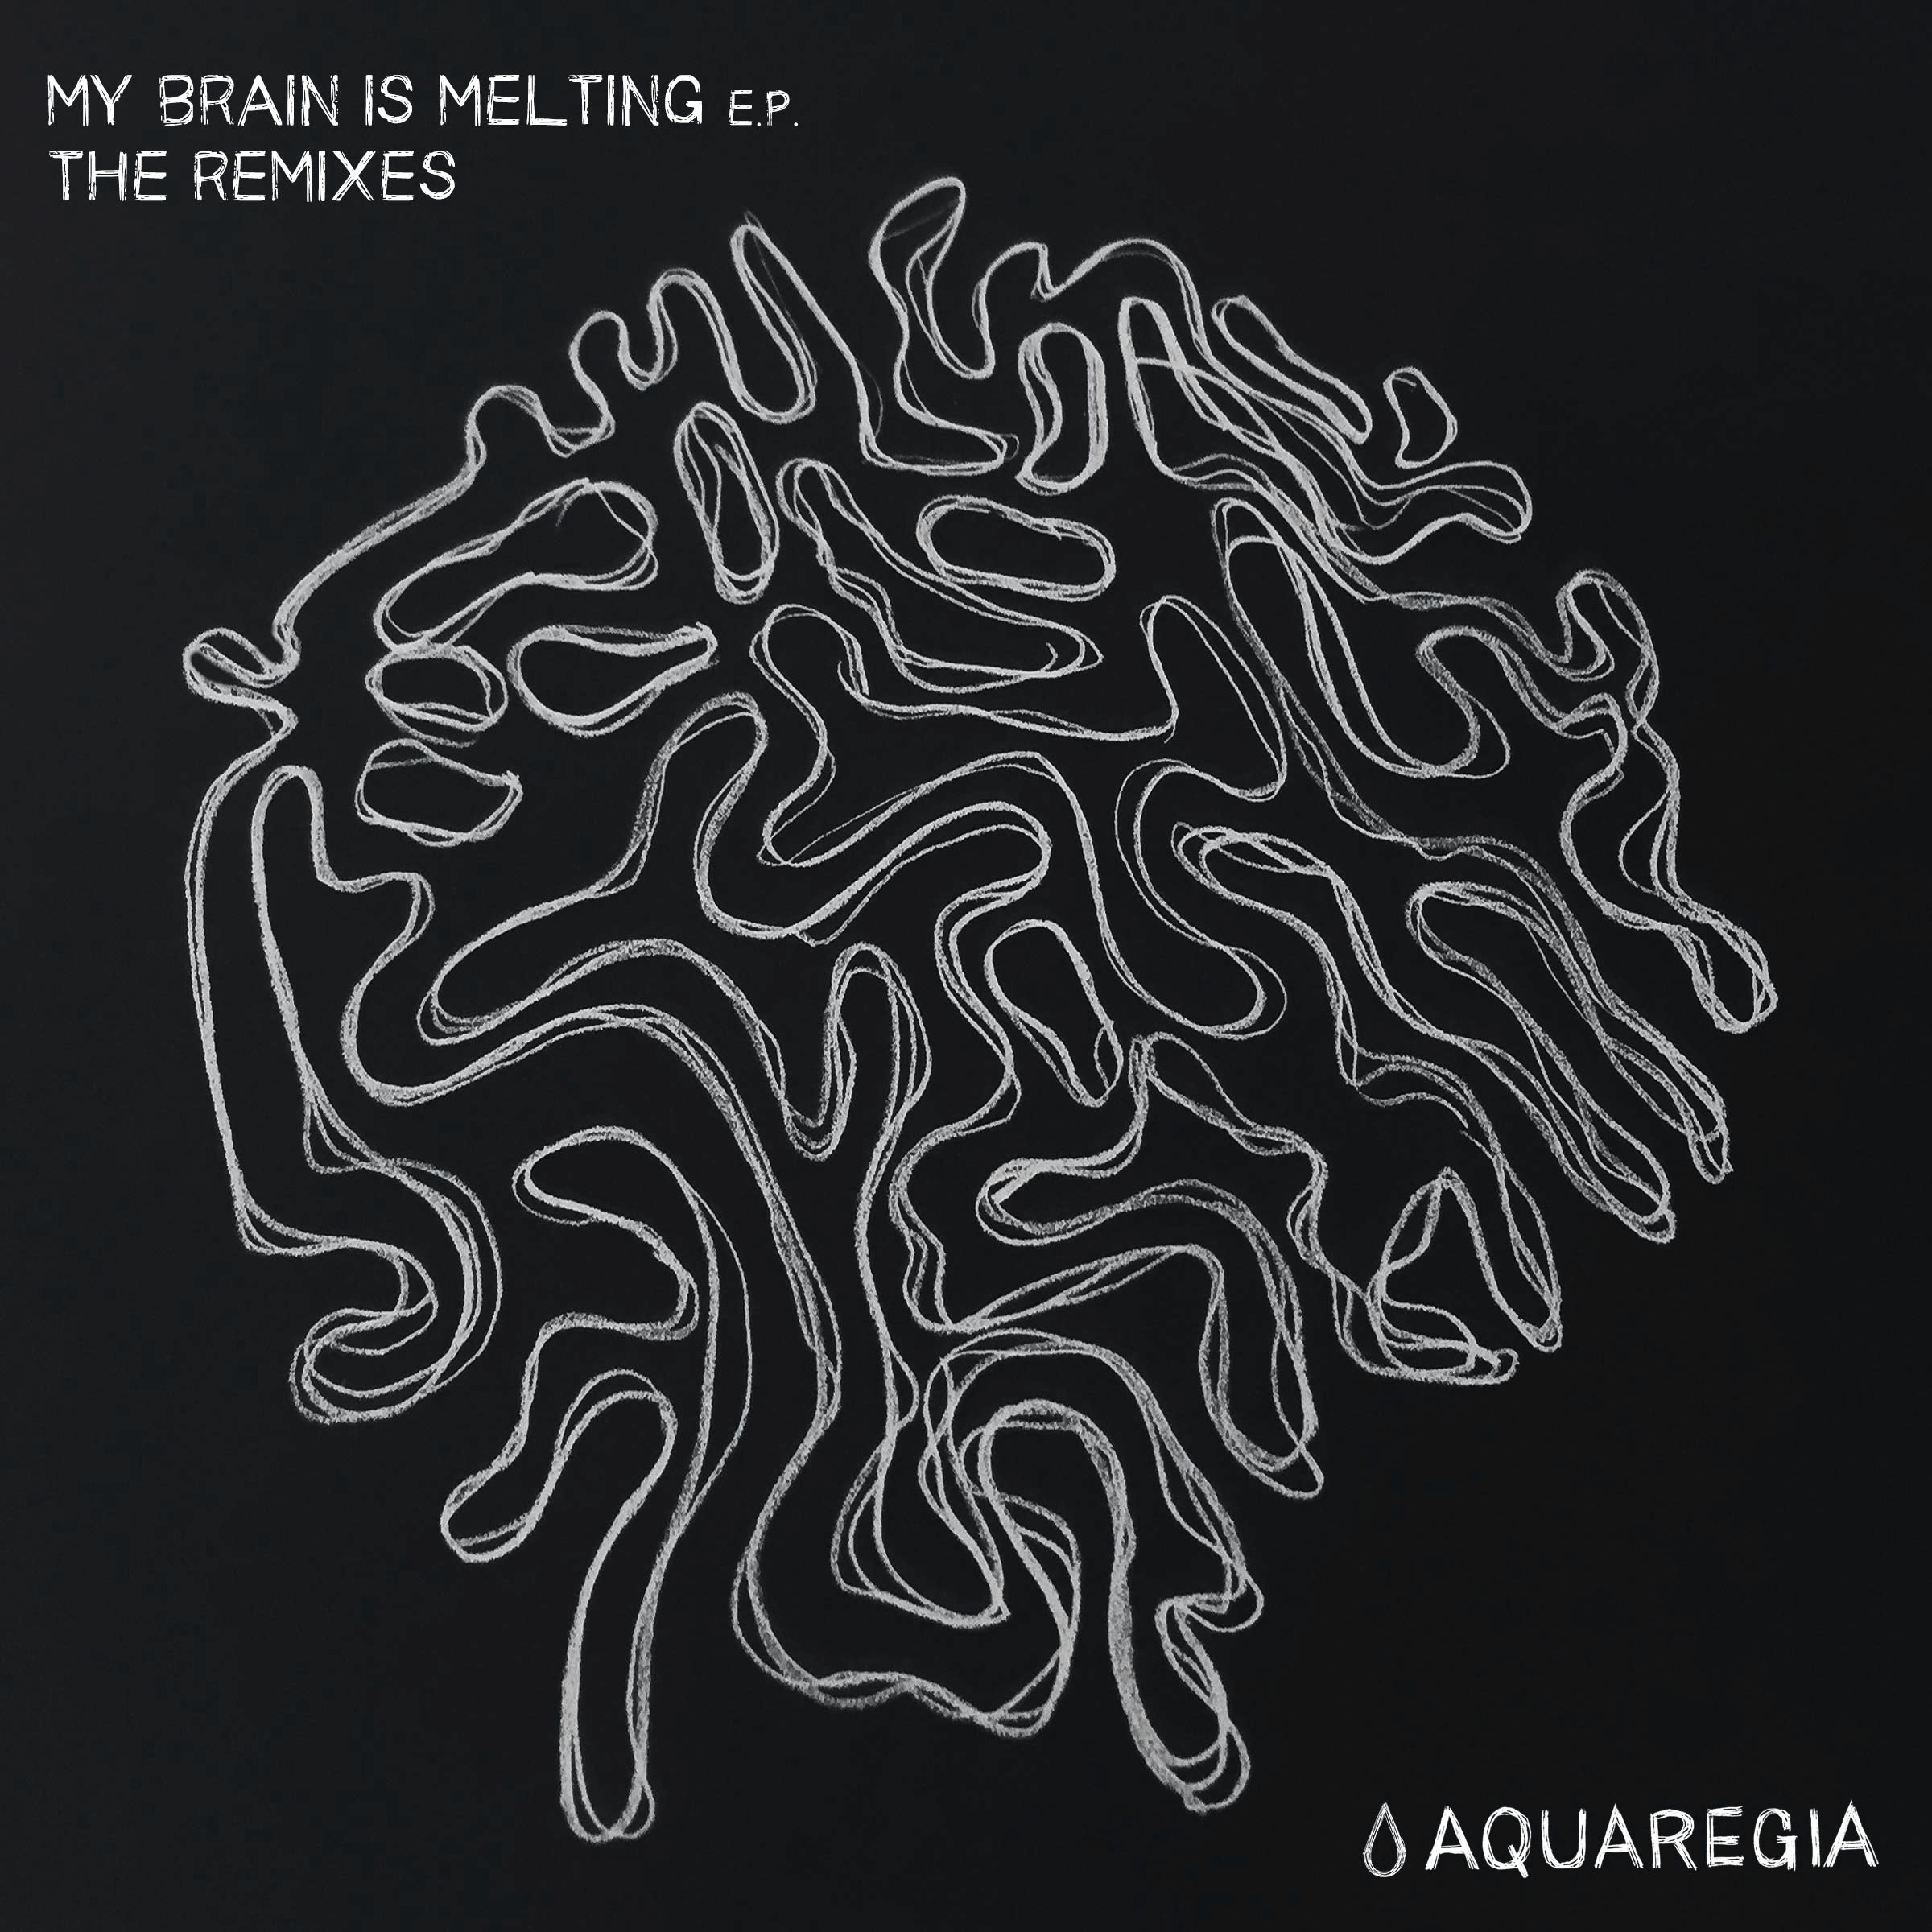 747 - My Brain Is Melting EP, The Remixes [AQR004]